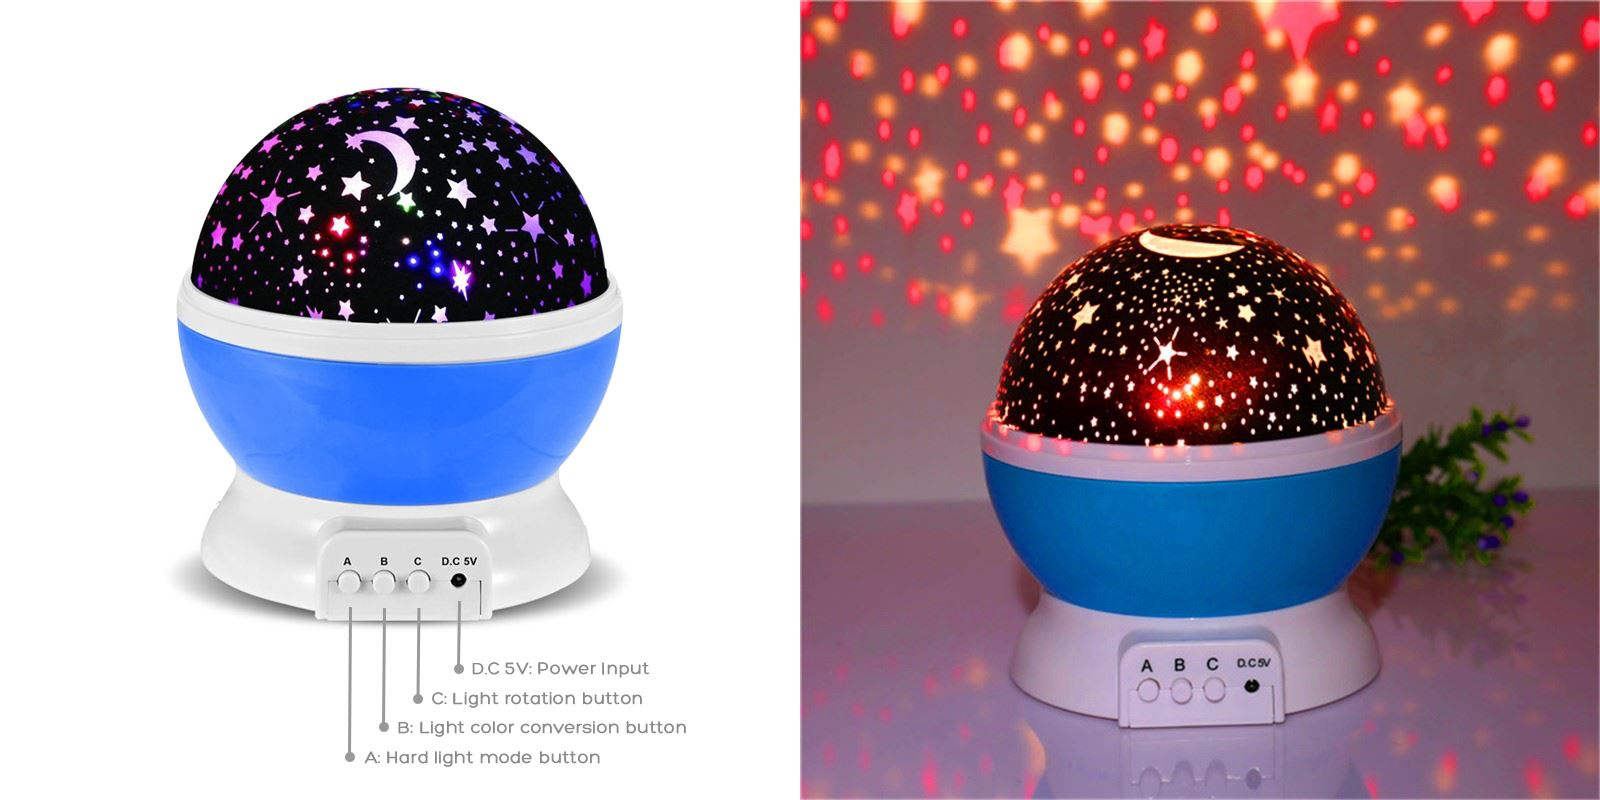 Star Night Light Healthier Lifestyle 4 All Blue